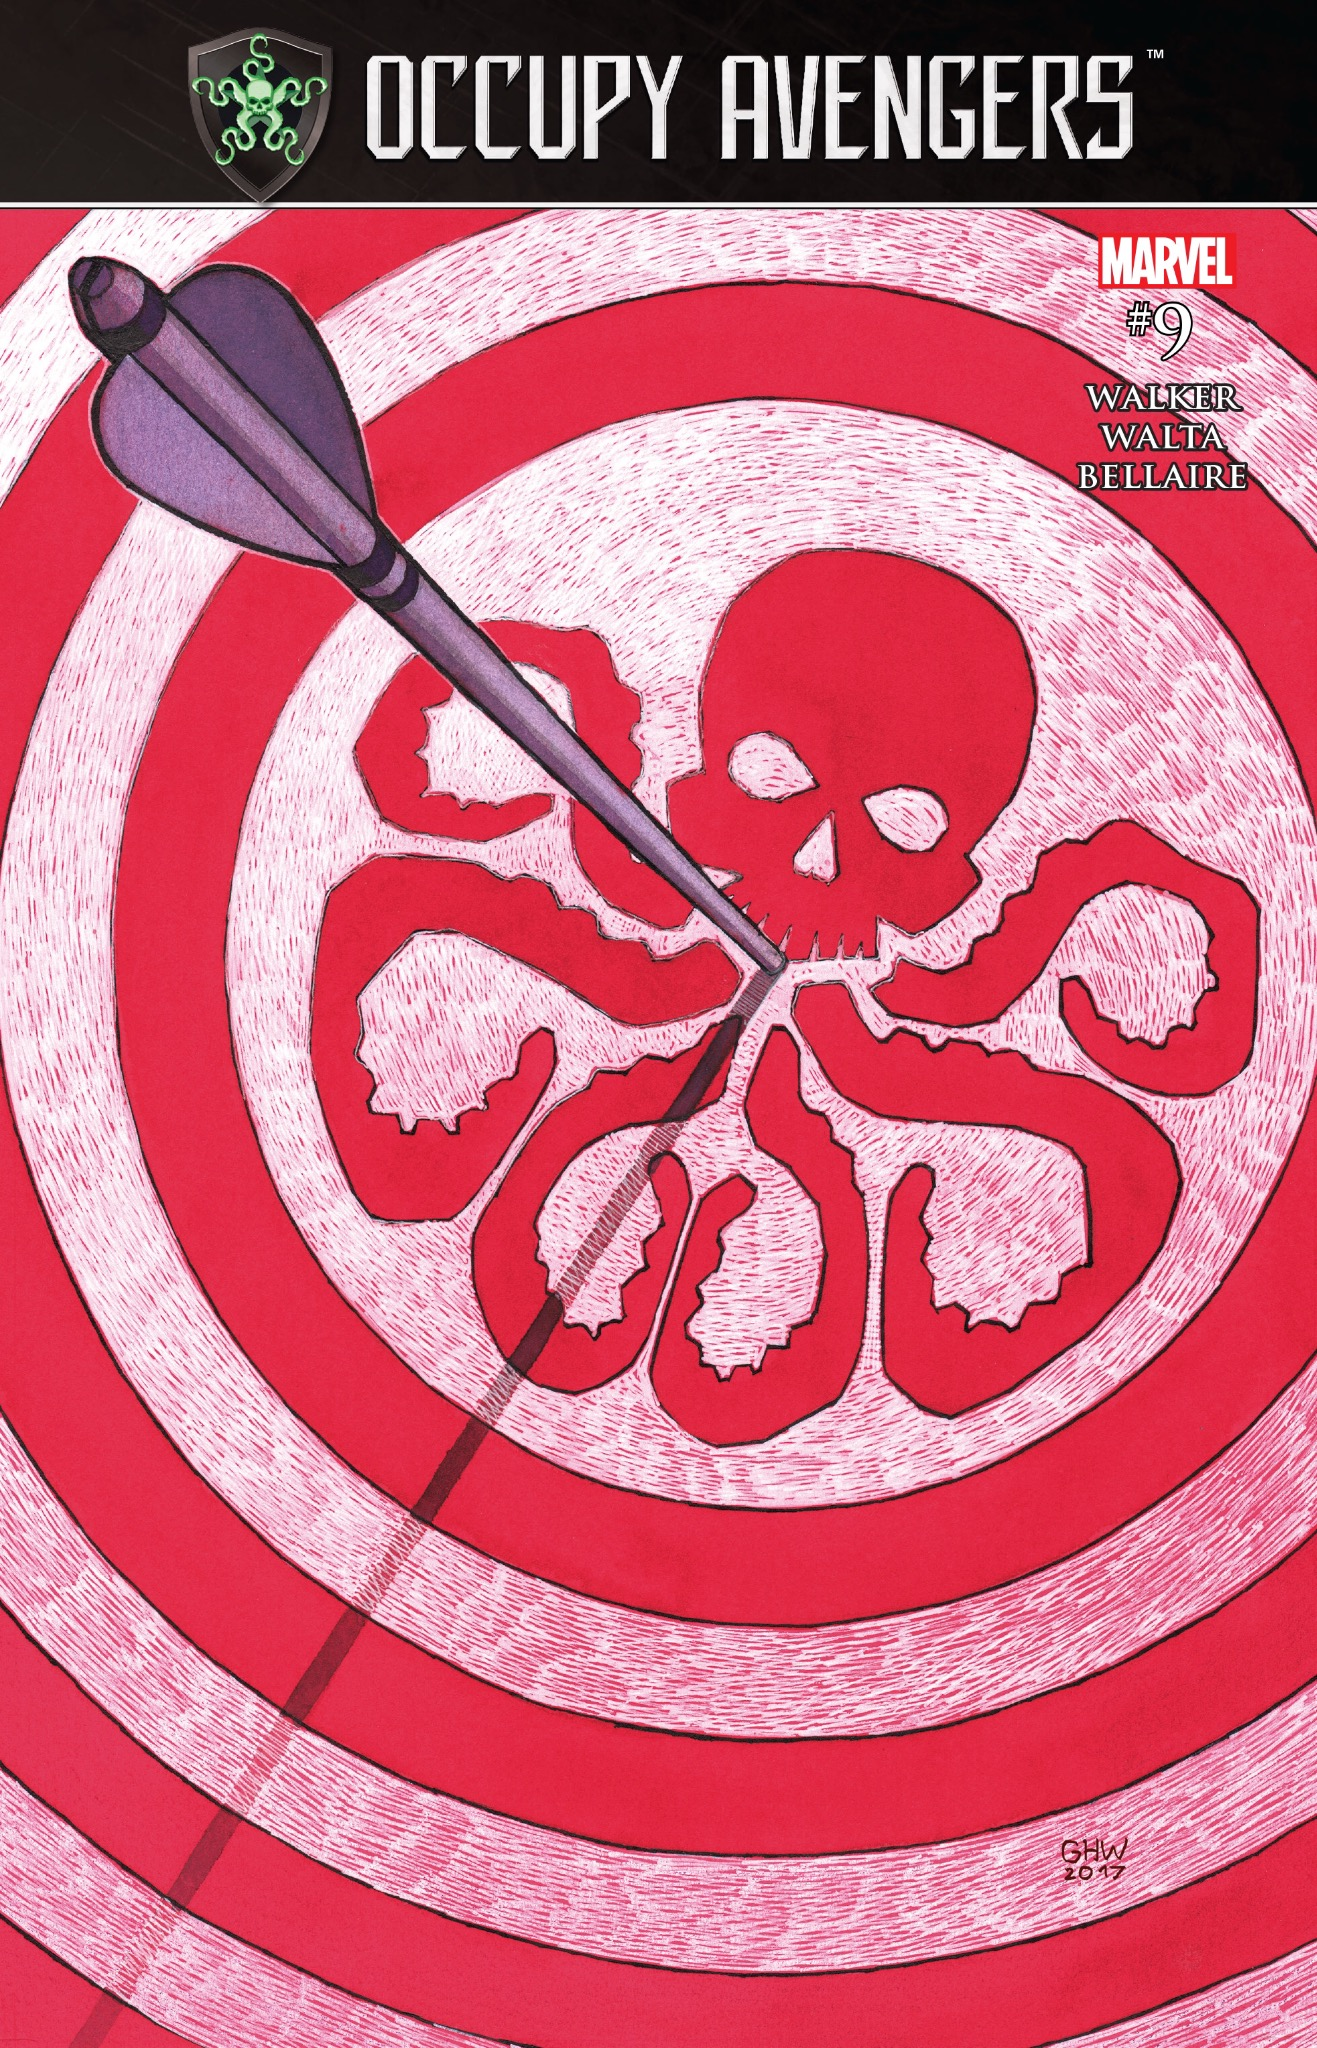 Occupy Avengers #9 cover